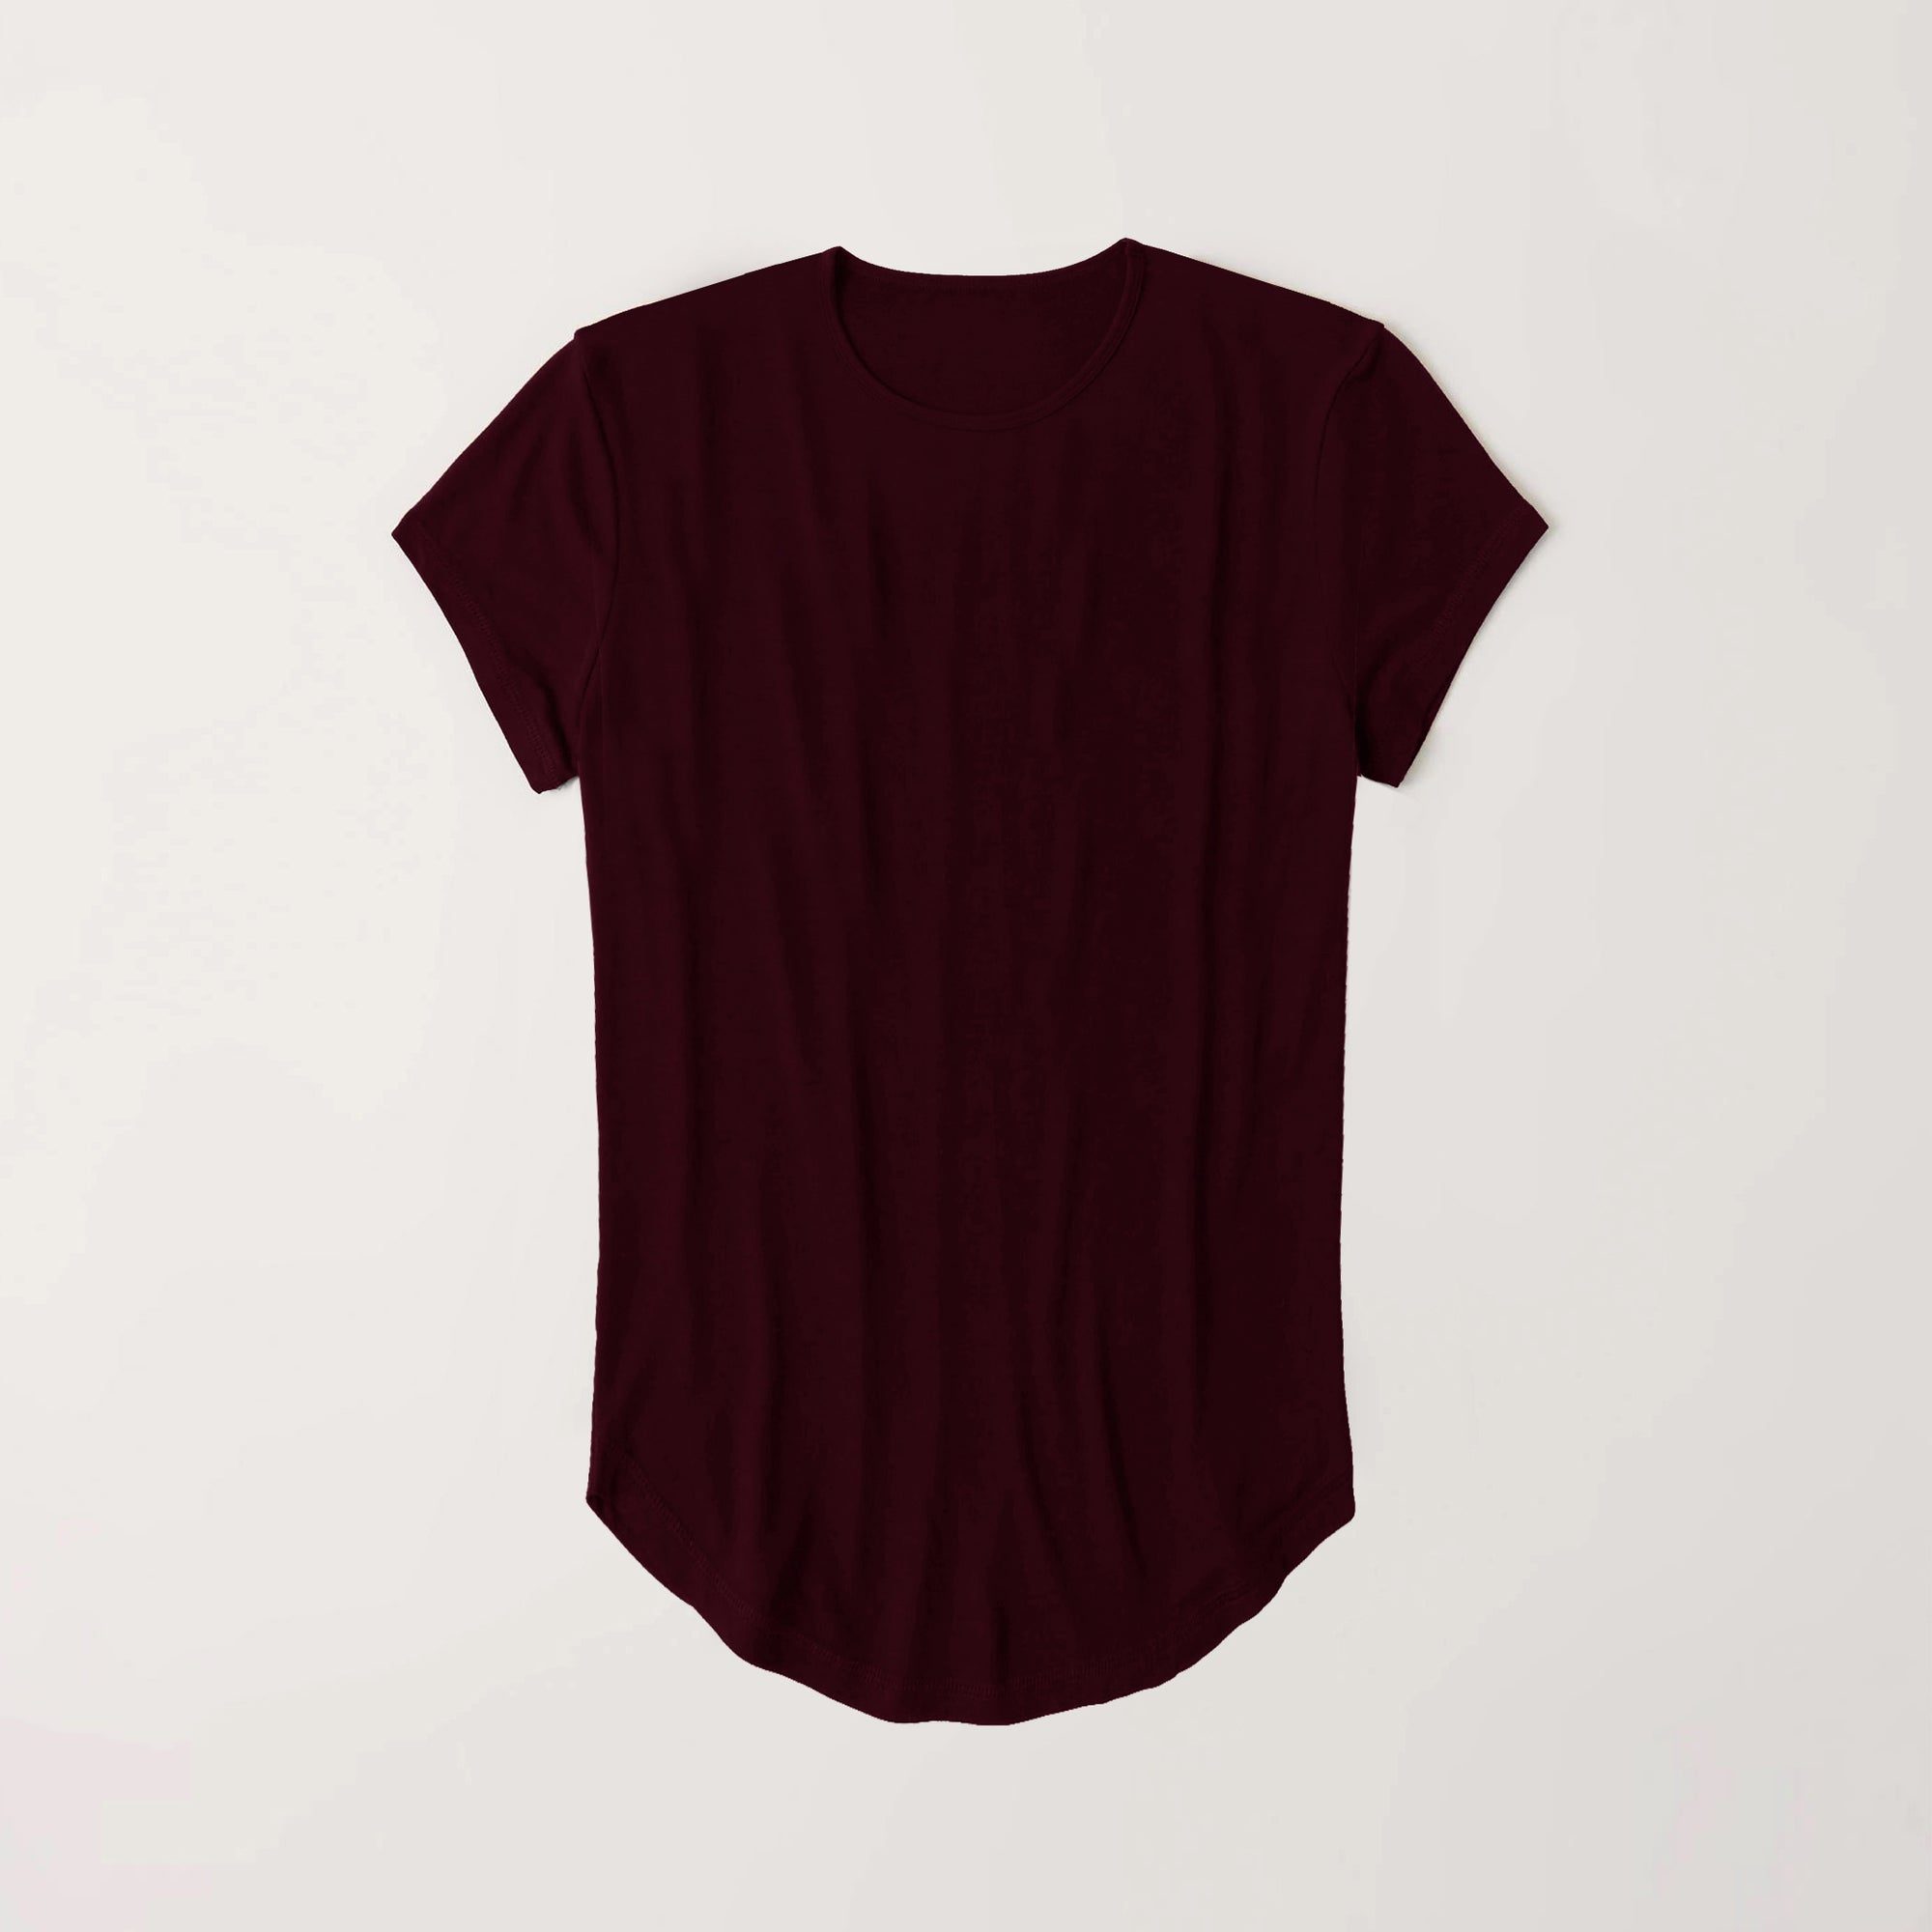 Popular Crew Neck Viscous Tee Shirt For Girls-Dark Maroon-NA11010